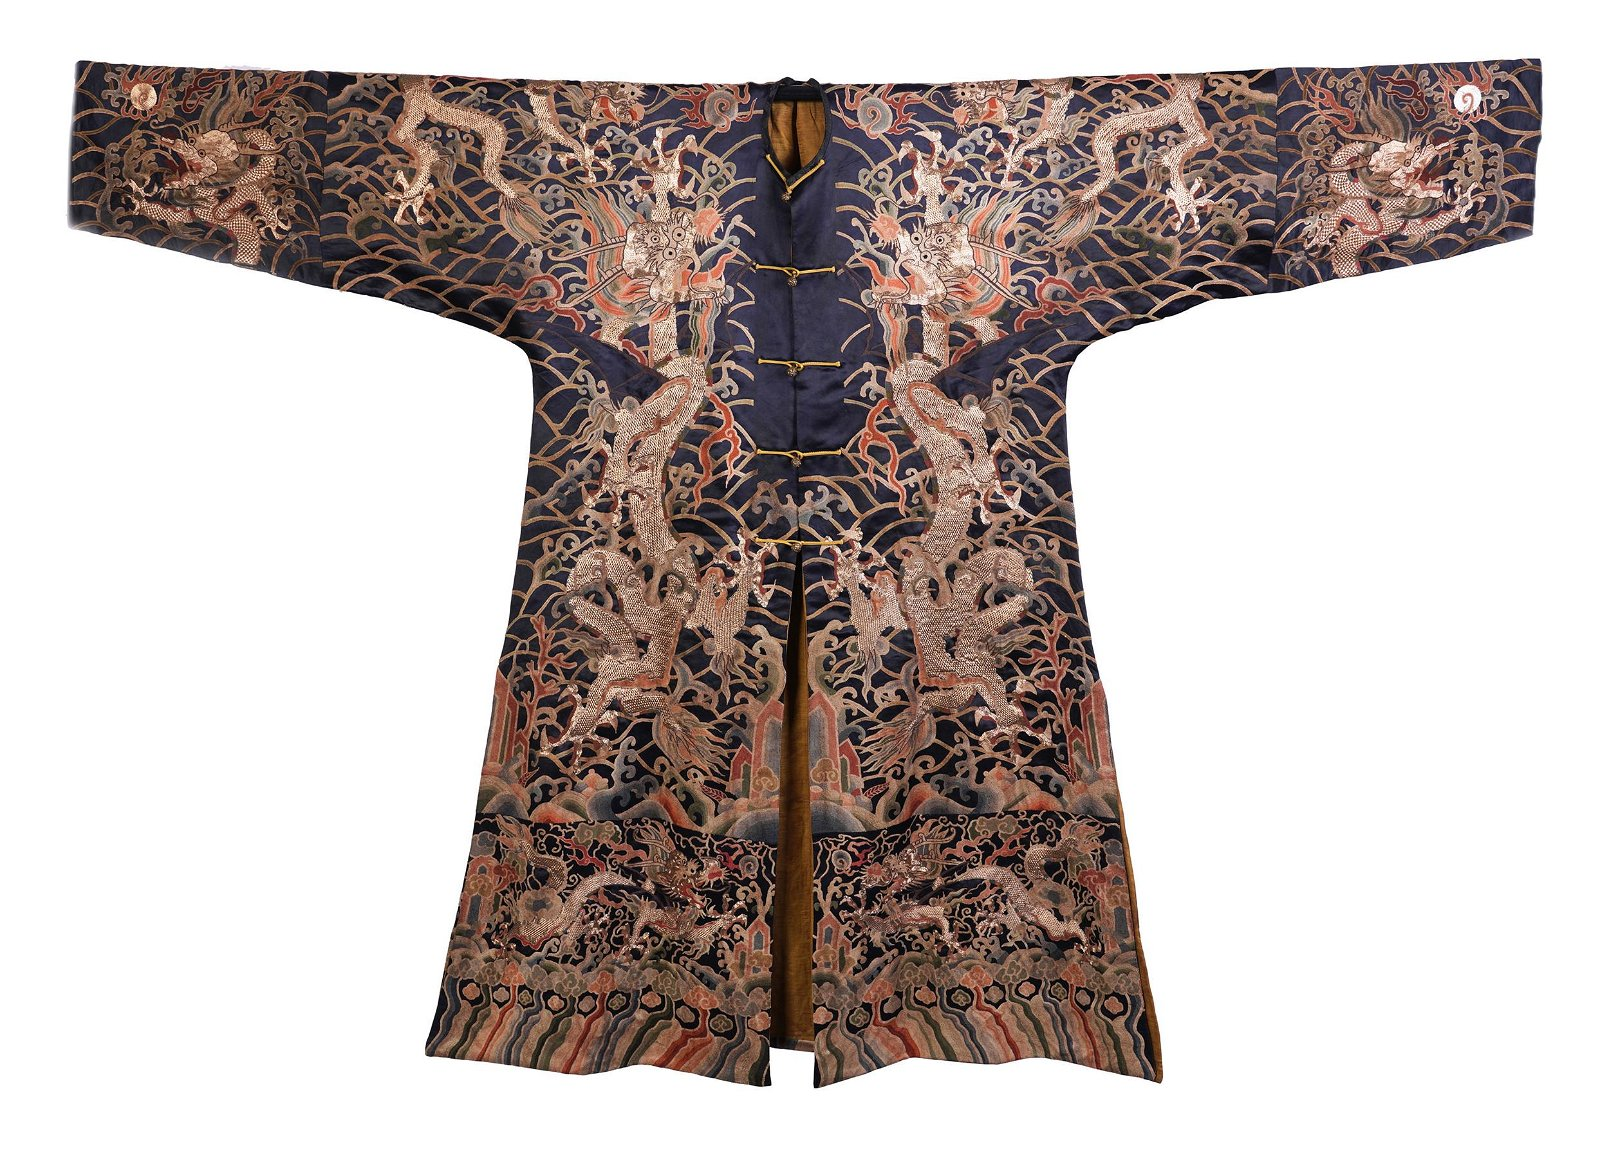 CHINESE GOLD FILIGREE EMBROIDERY DRAGON TMPERIAL ROBE